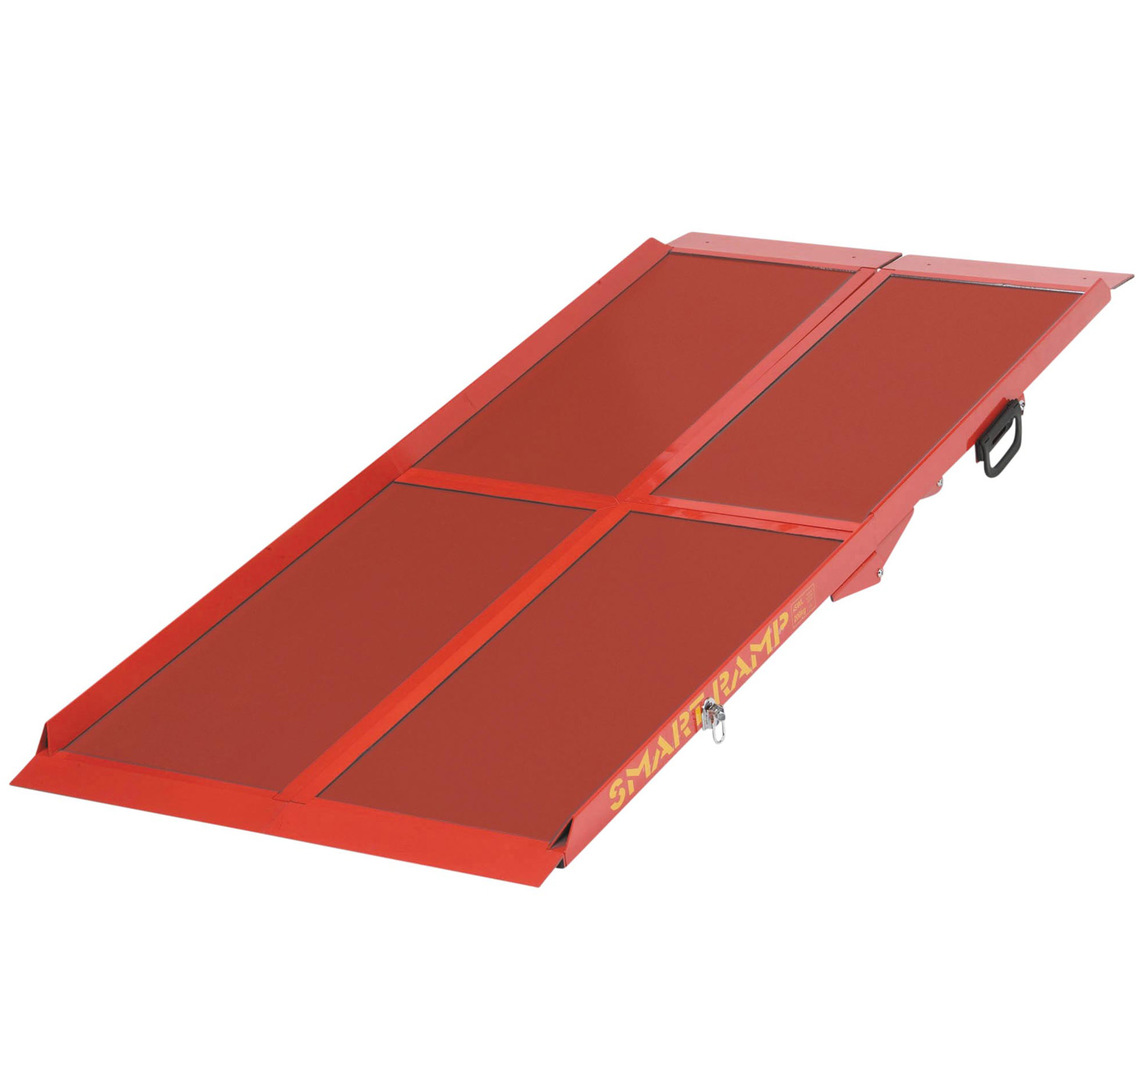 Wheelchairs & Accessories | Ramp Range | smart-ramp